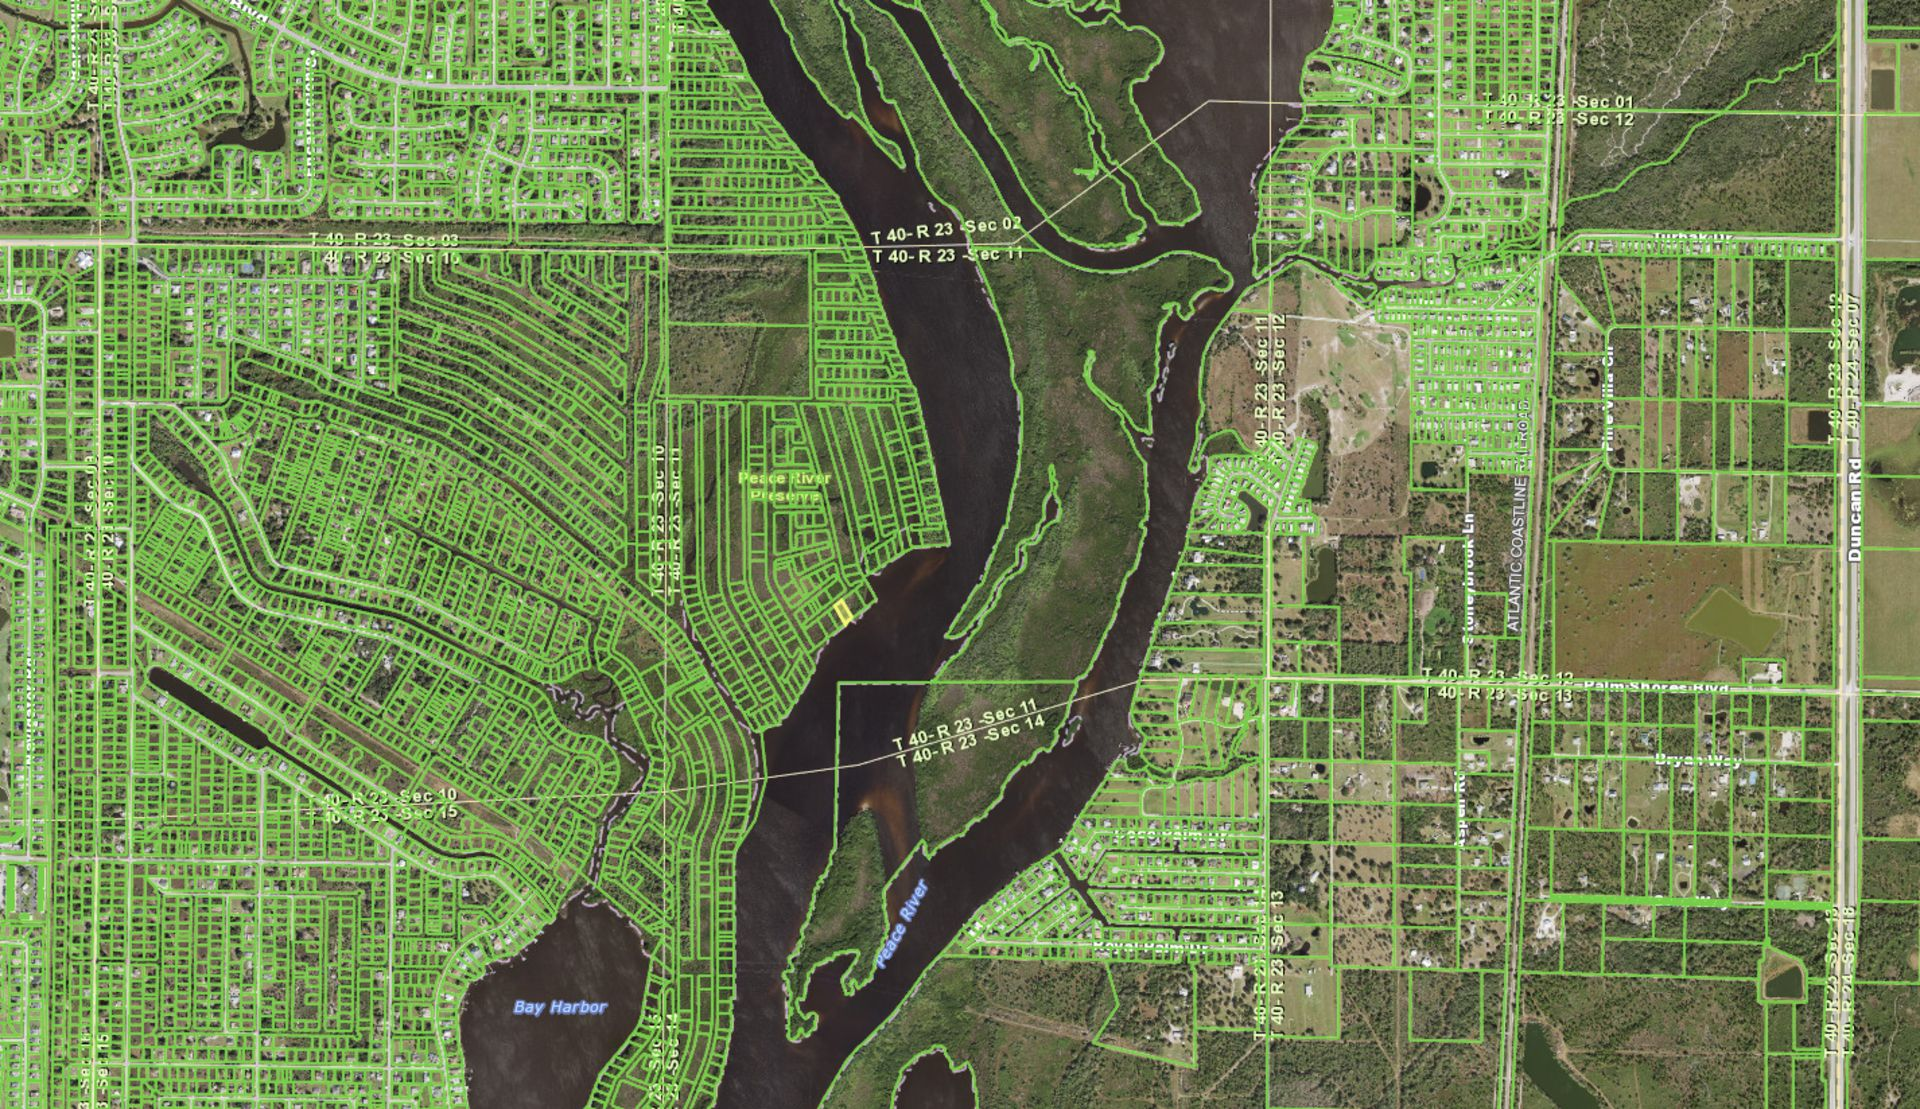 Own a Lot On the Peace River in Charlotte County, Florida! - Image 4 of 4